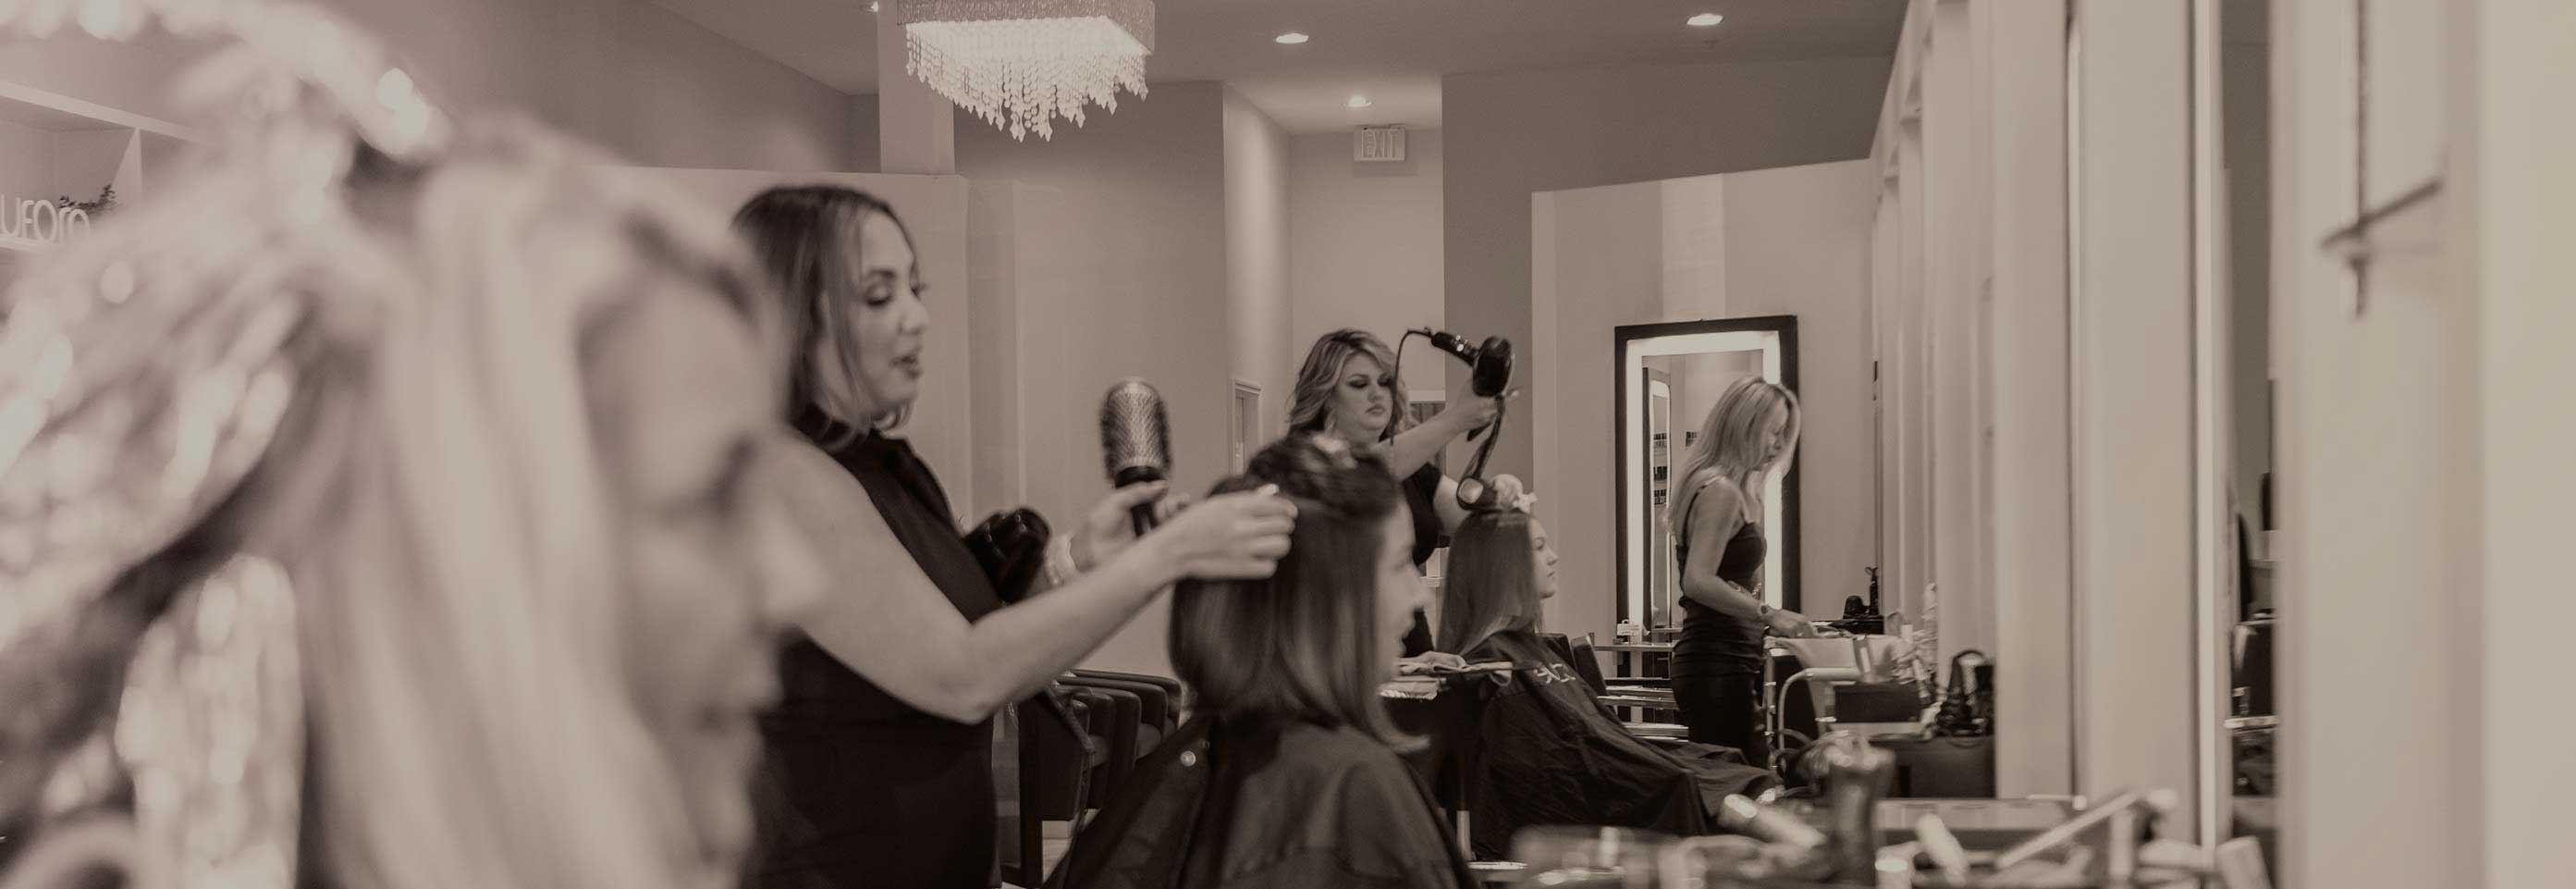 Hair stylists working at The Beauty District in Naples, Florida